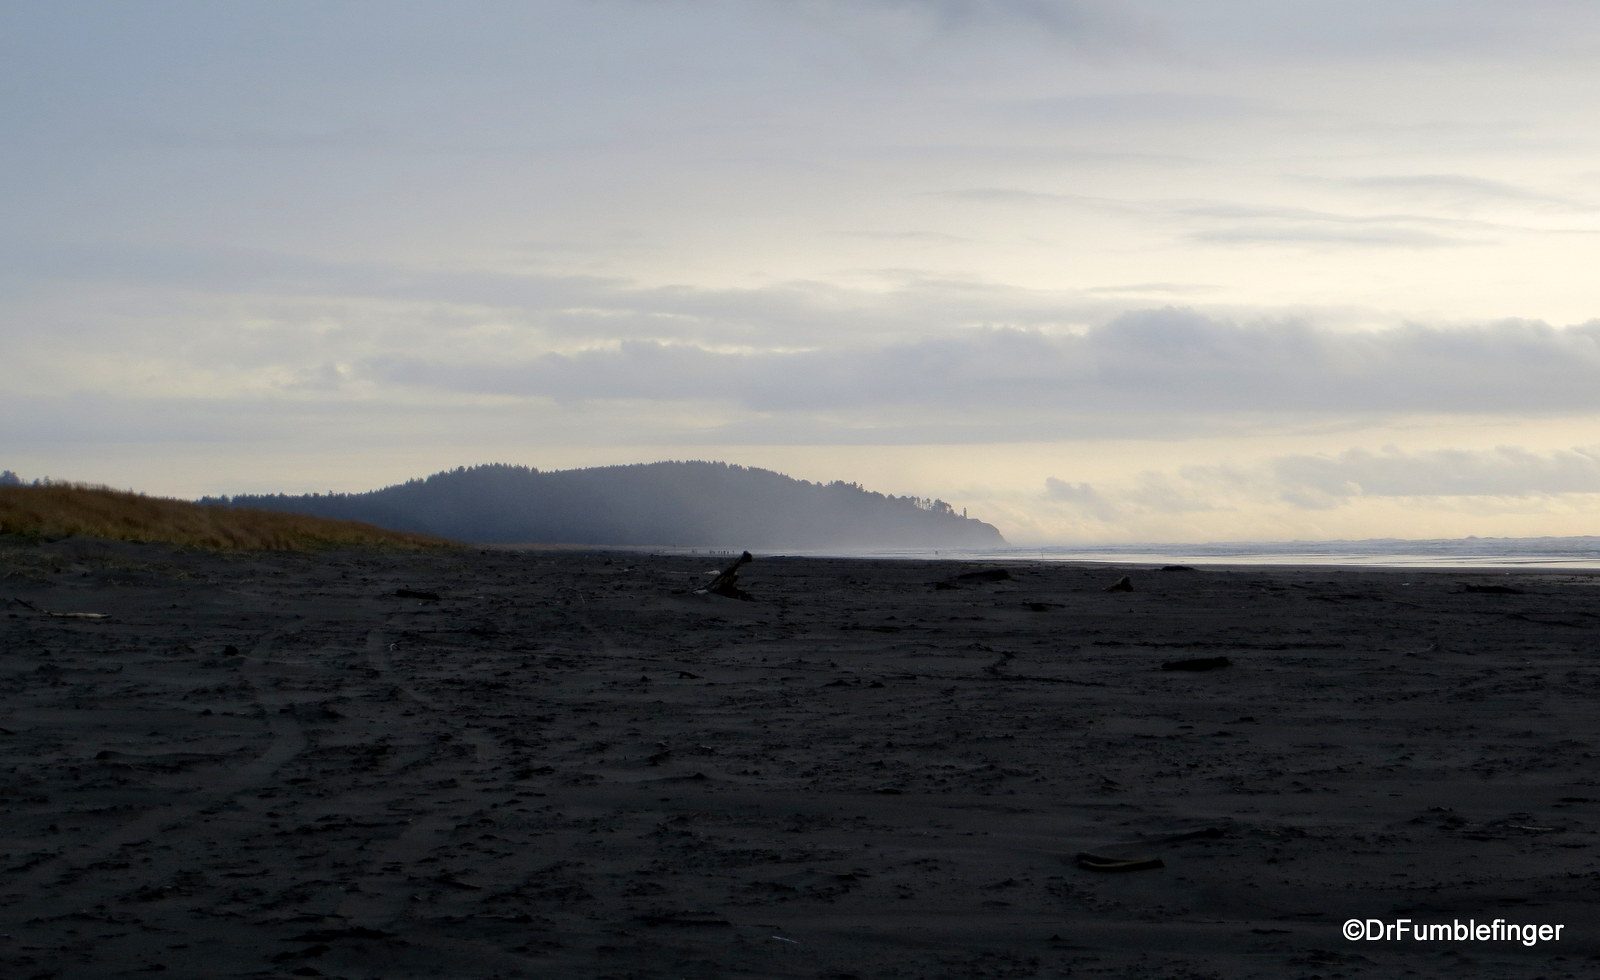 Cape Disappointment is seen in the distance